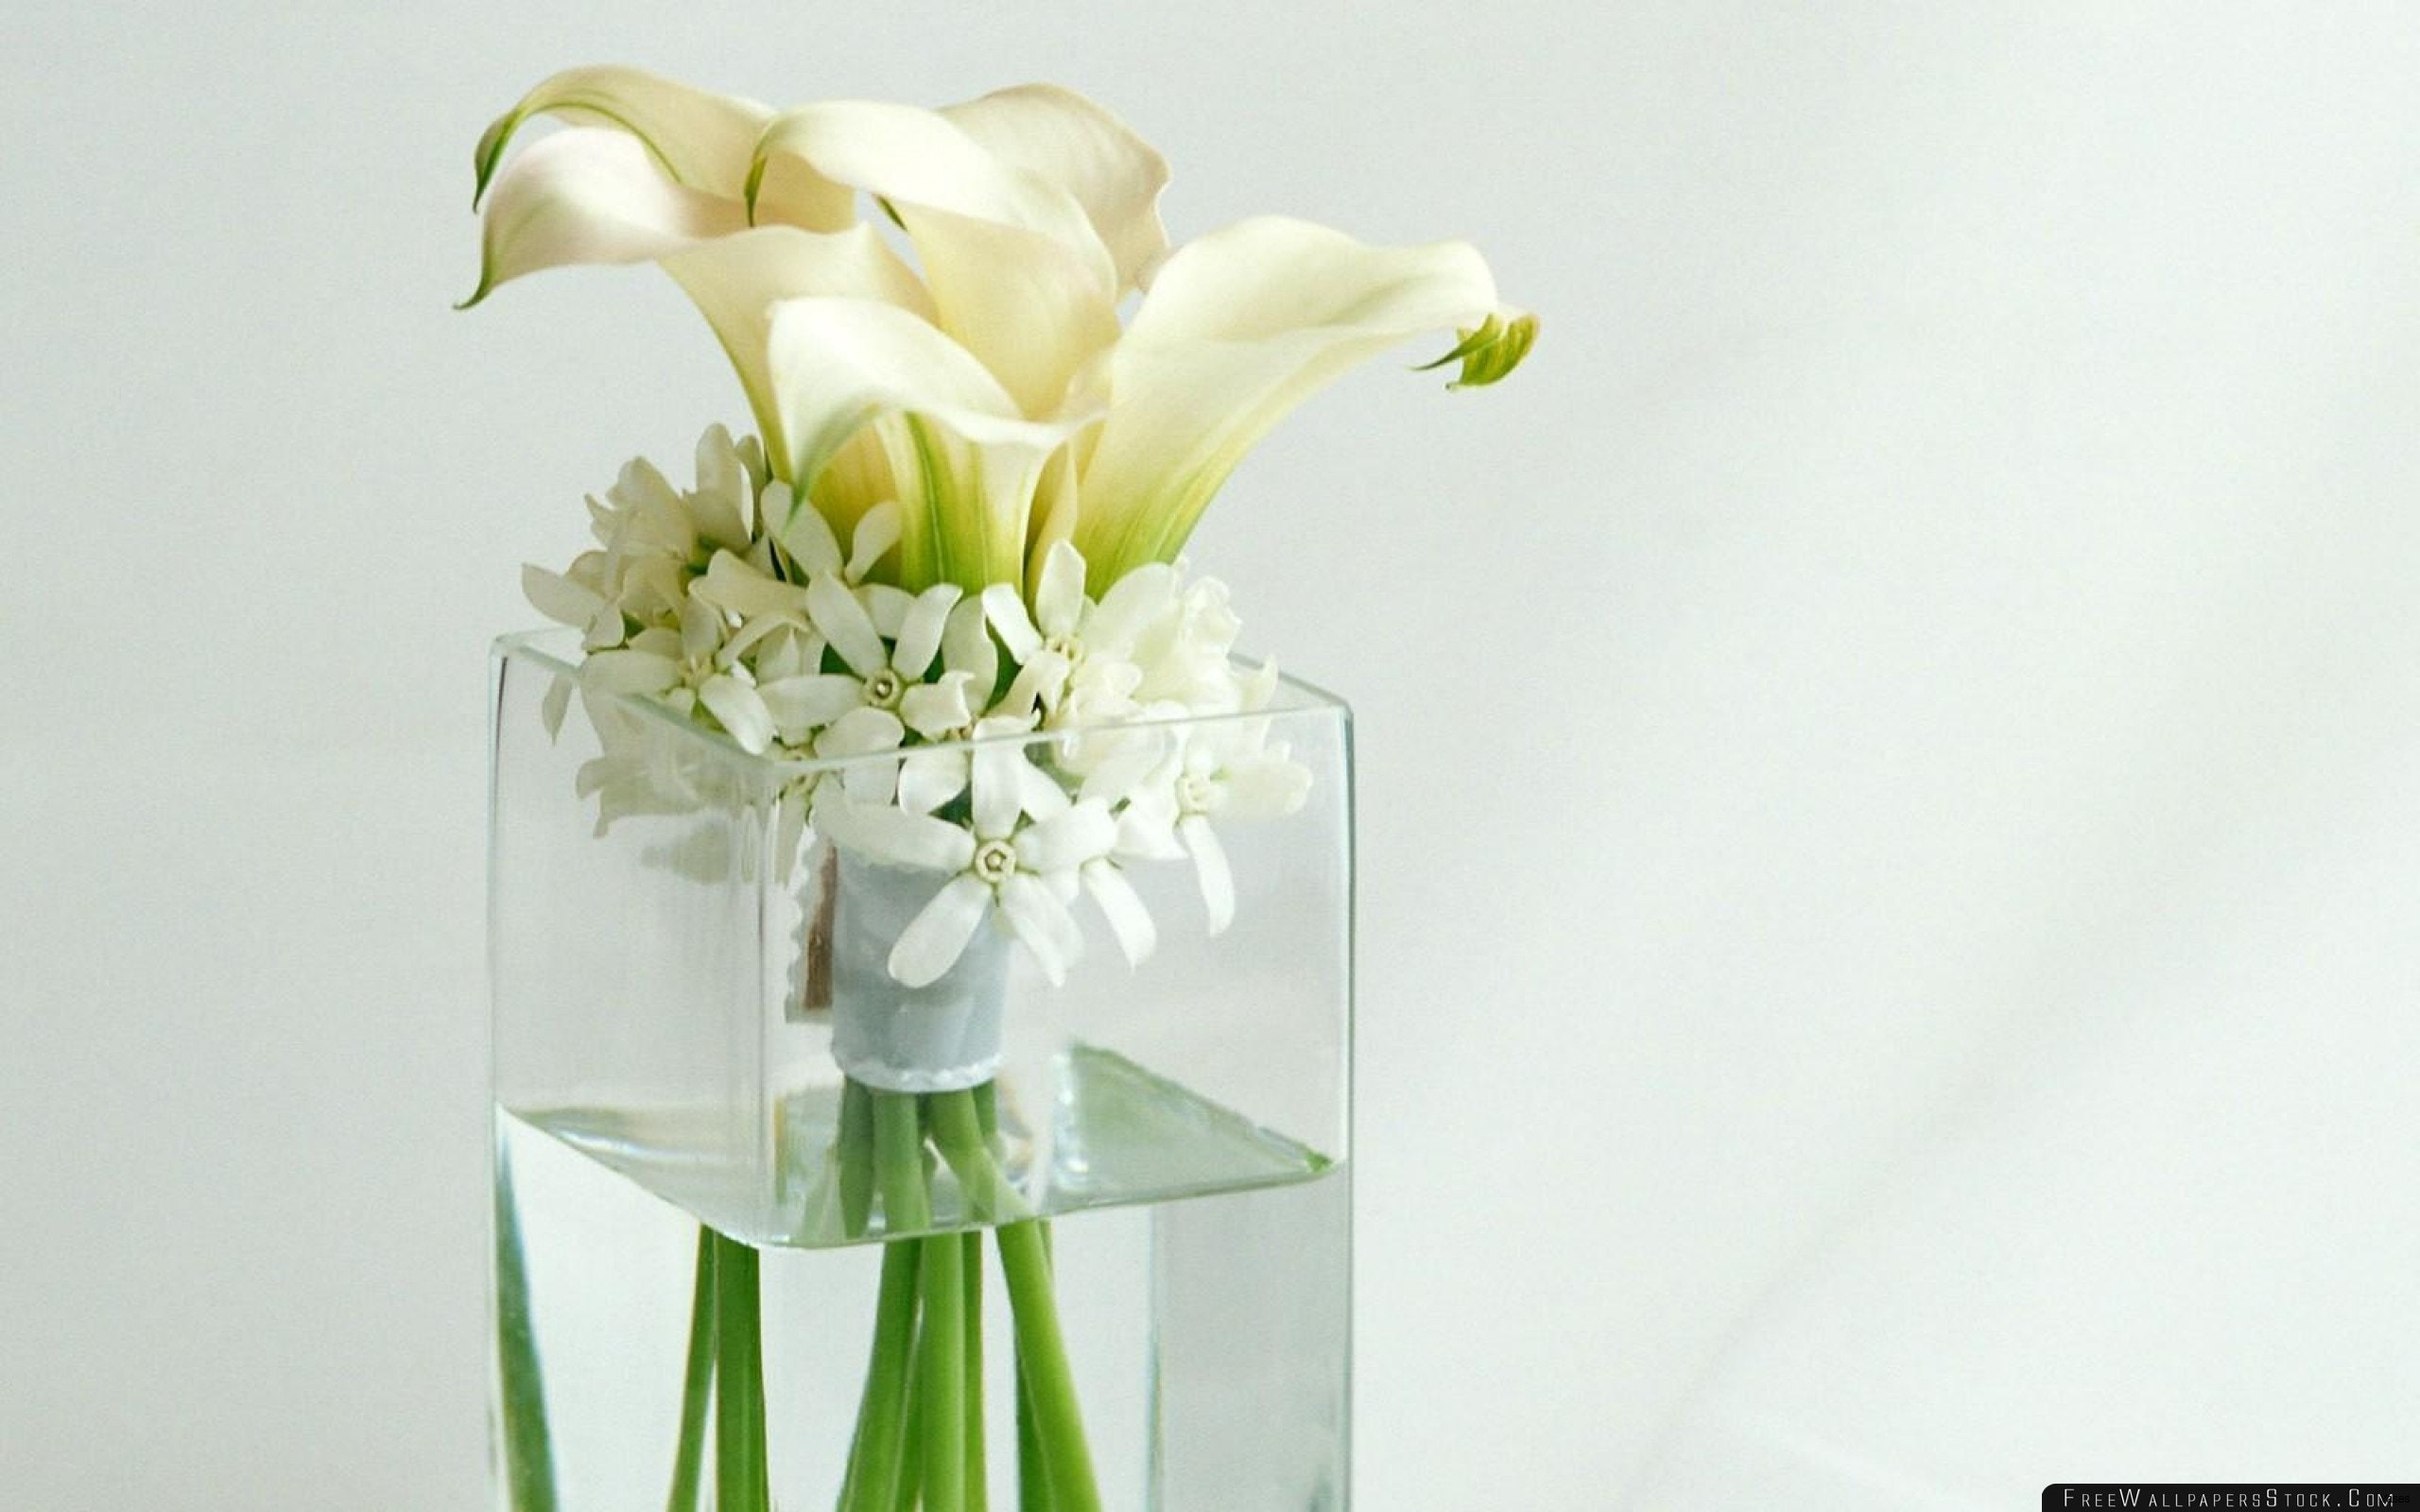 Tall Vase Centerpiece Ideas Vases Flowers In Water 0d Artificial Design Ideas something Different In